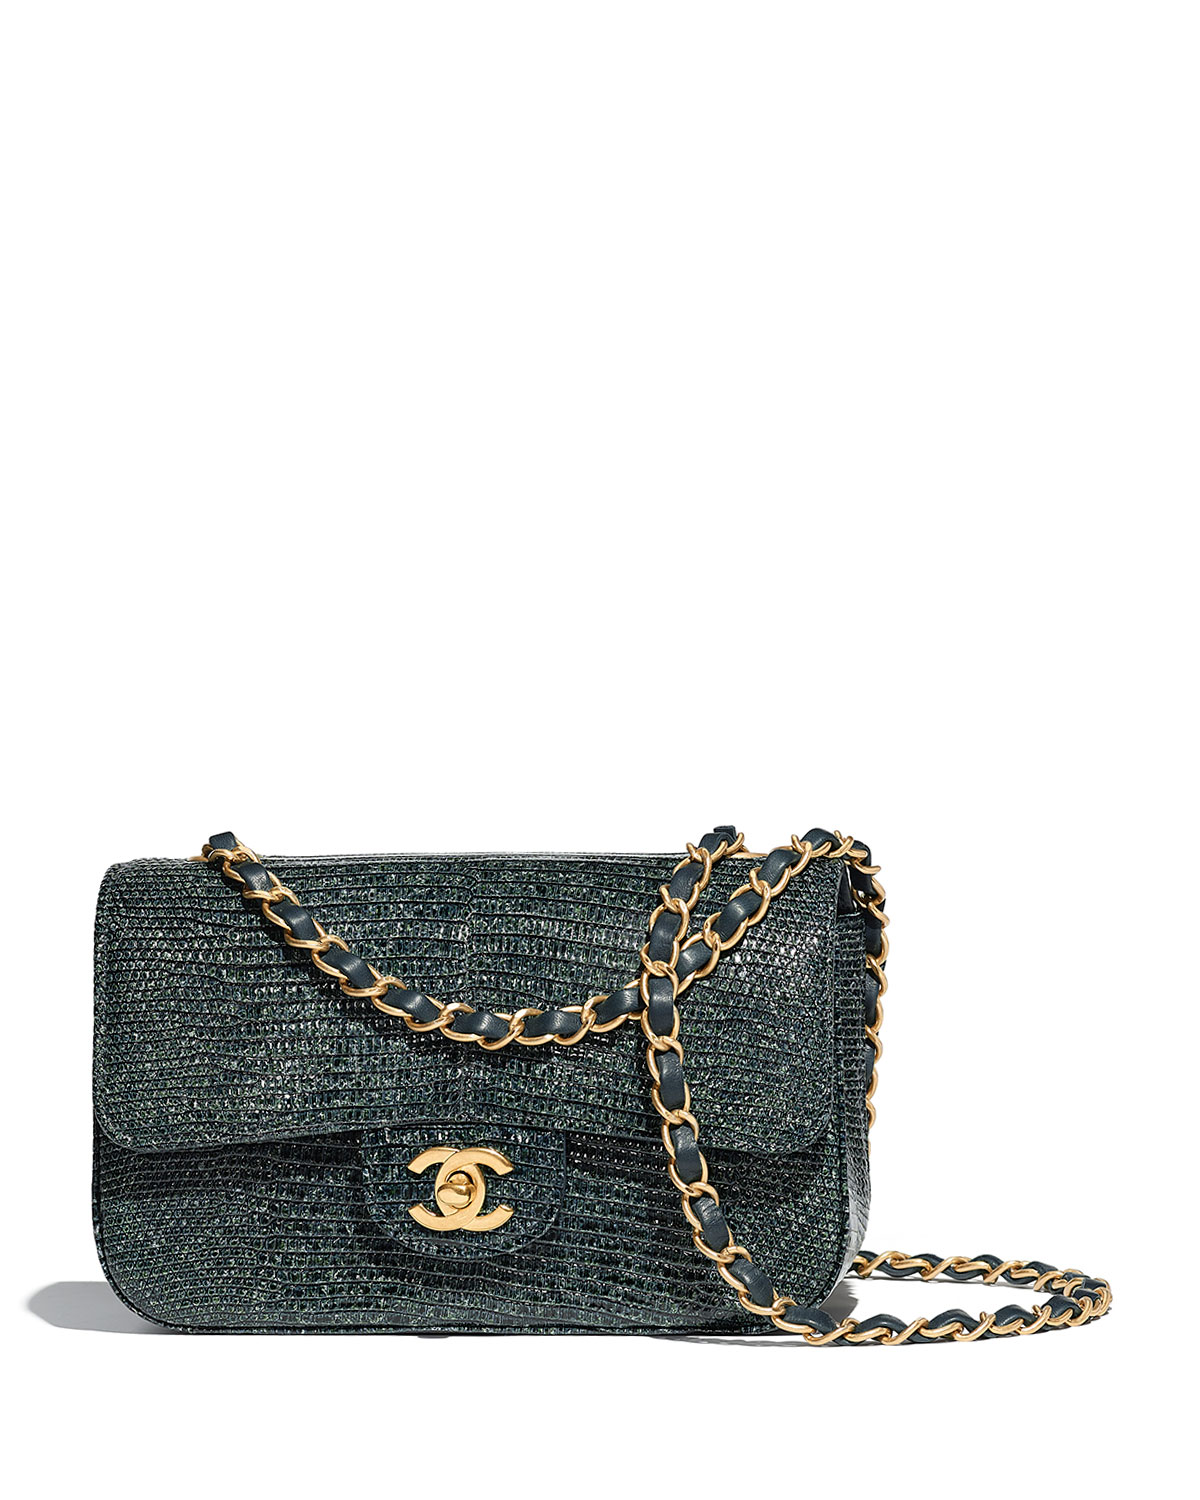 732ef489727e CHANEL MINI FLAP BAG